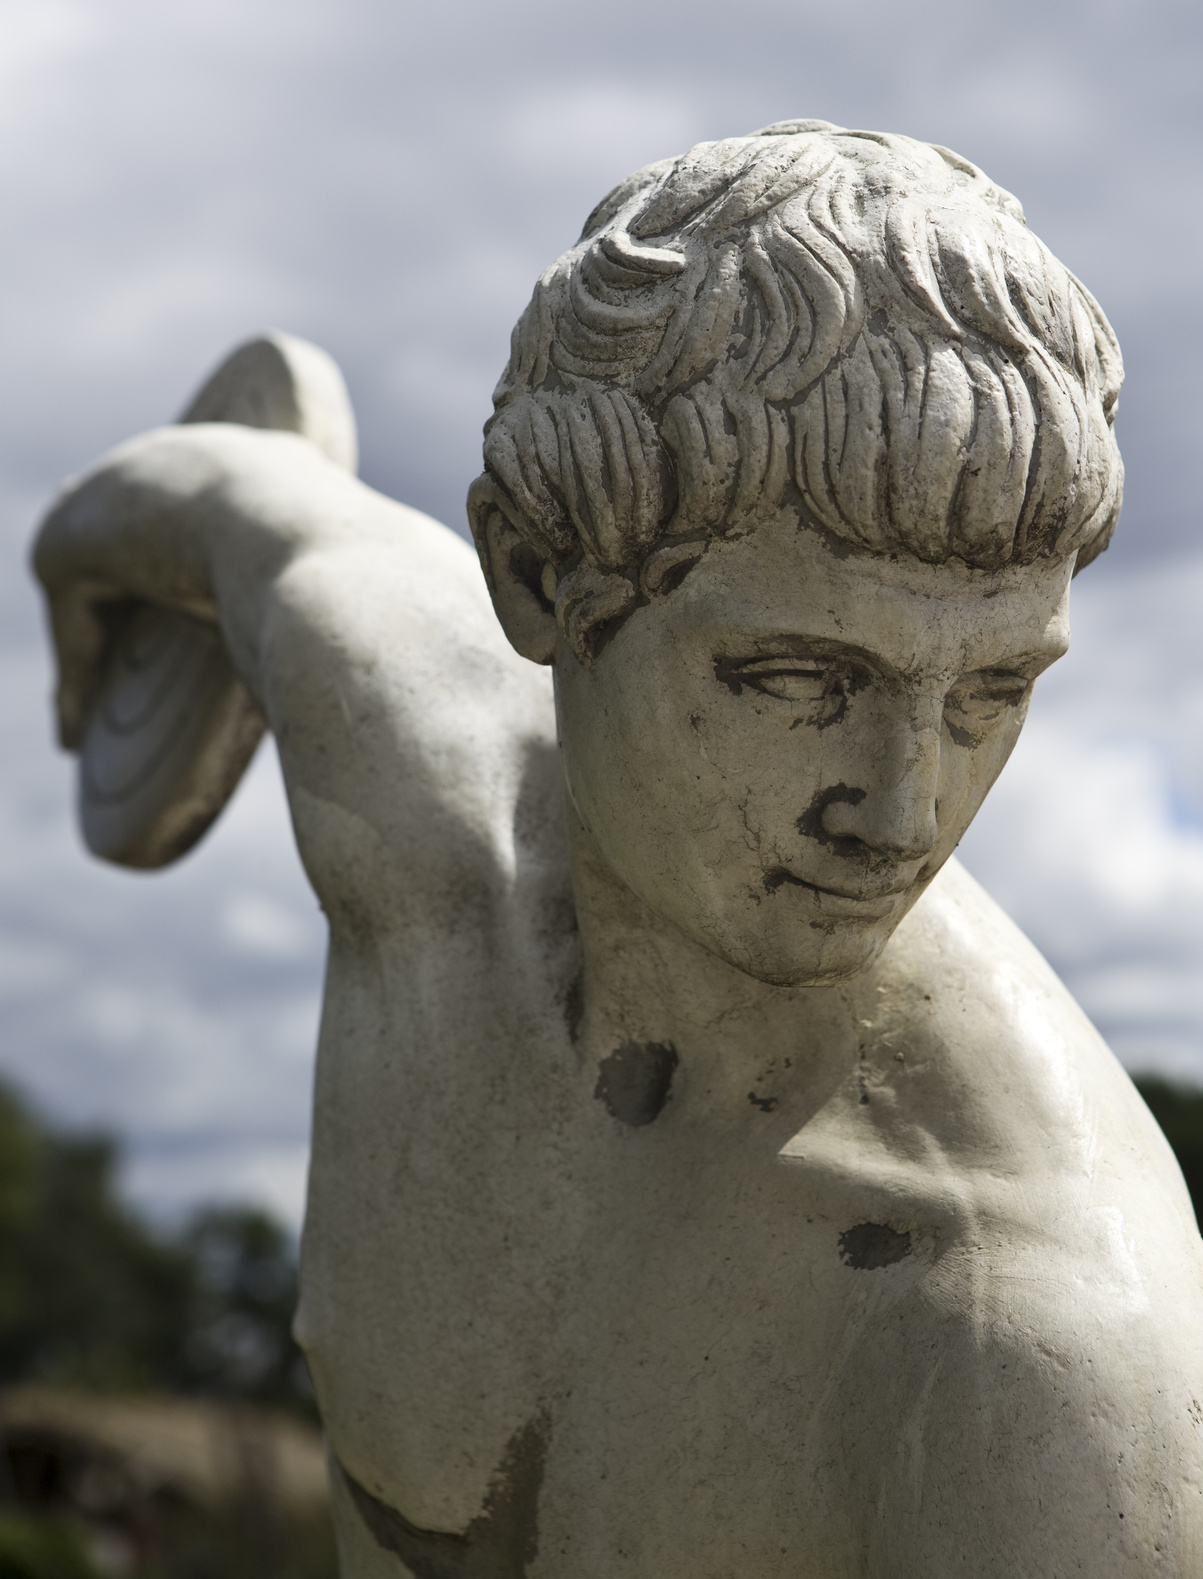 The Greeks used statues to immortalize their greatest athletes, how will you preserve the memory of your favorite athlete?